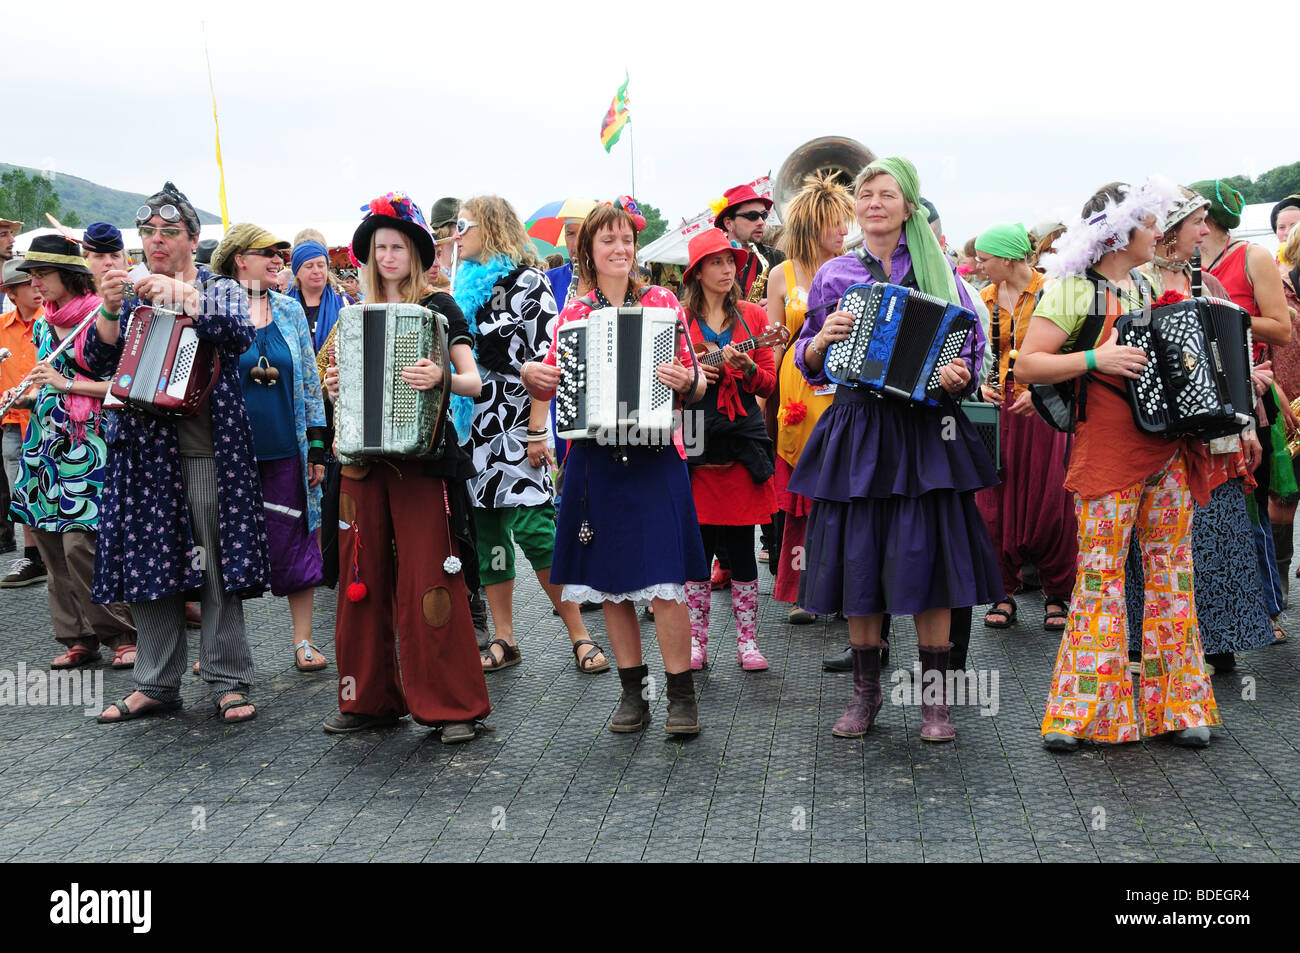 Troup of Belgian entertainers at the Pontardawe Festival Glamorgan Wales Cymru UK - Stock Image